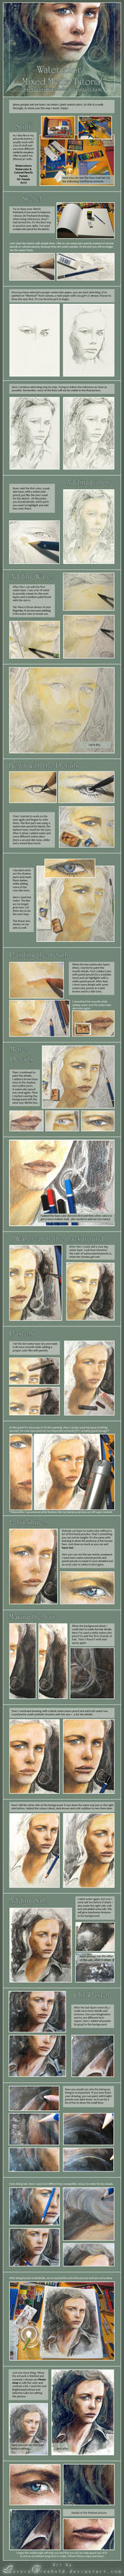 Watercolour Tutorial by AuroraWienhold